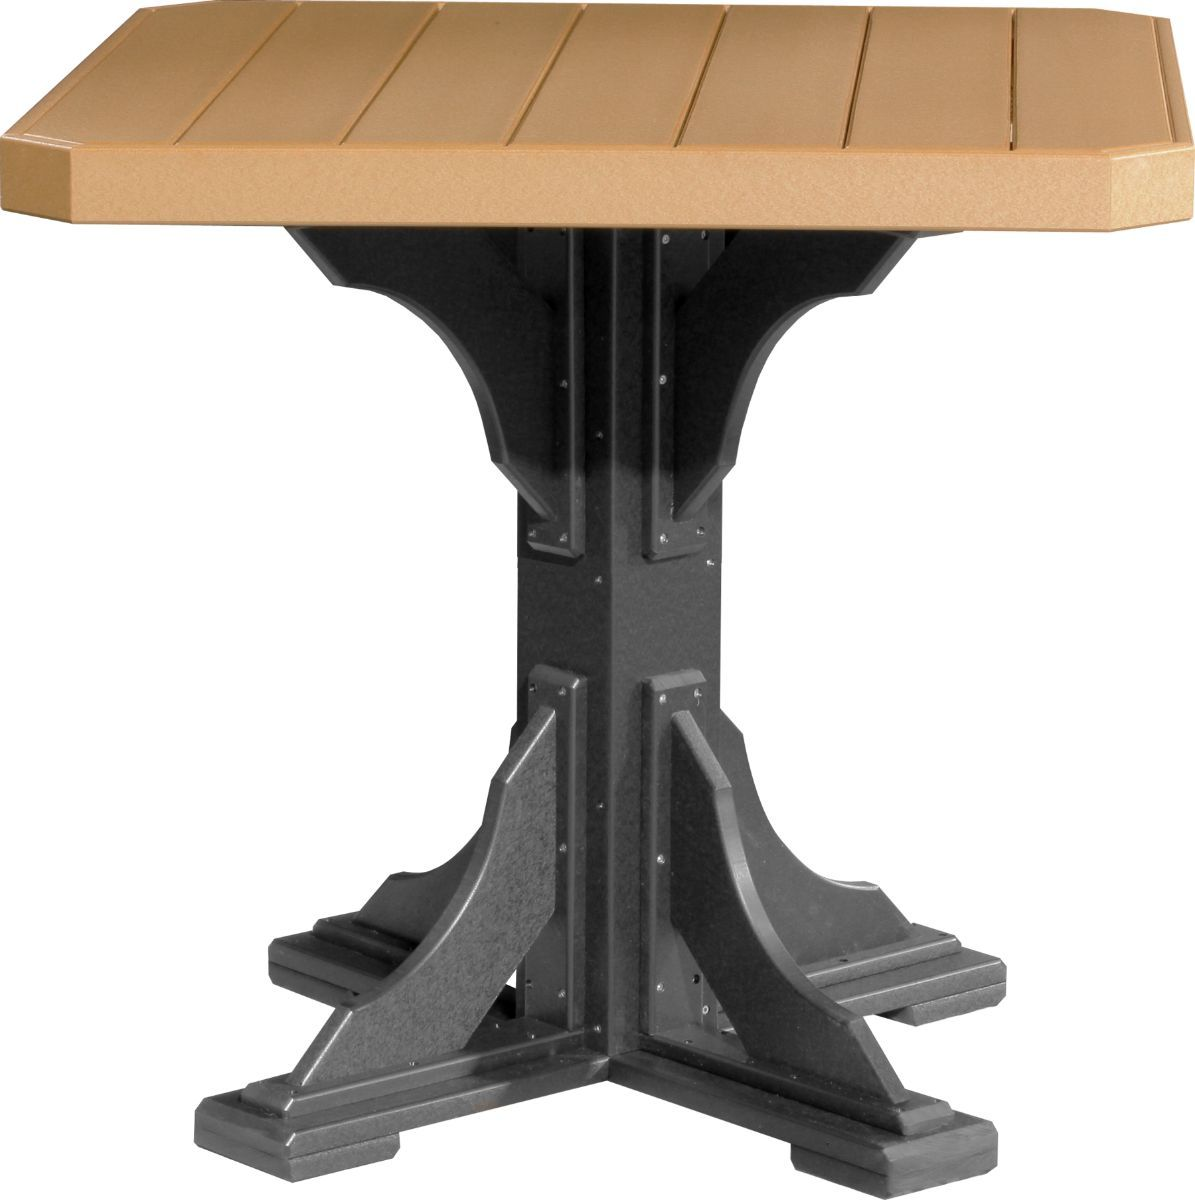 Cedar and Black Tahiti Outdoor Bar Table